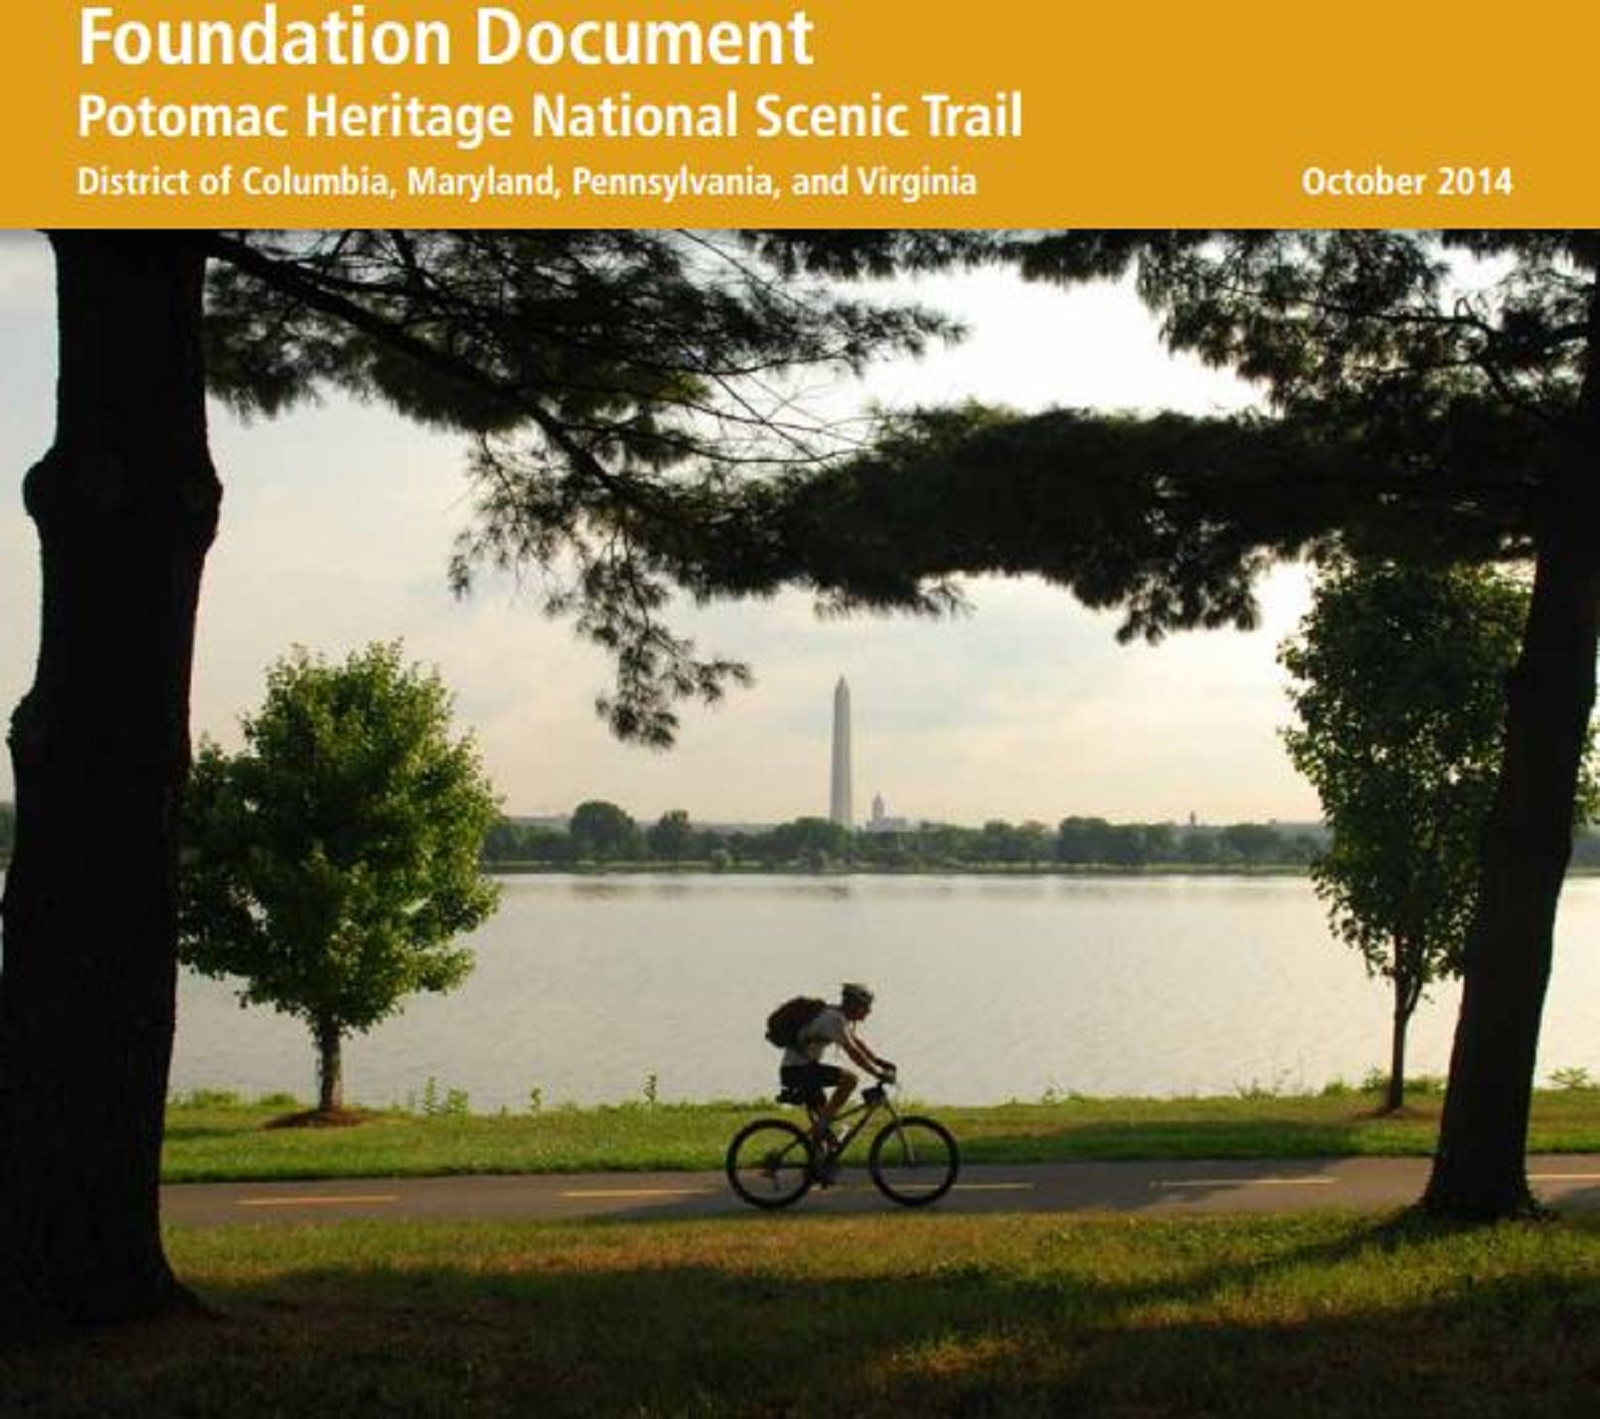 The cover of the Foundations Document for Potomac Heritage National Scenic Trail.